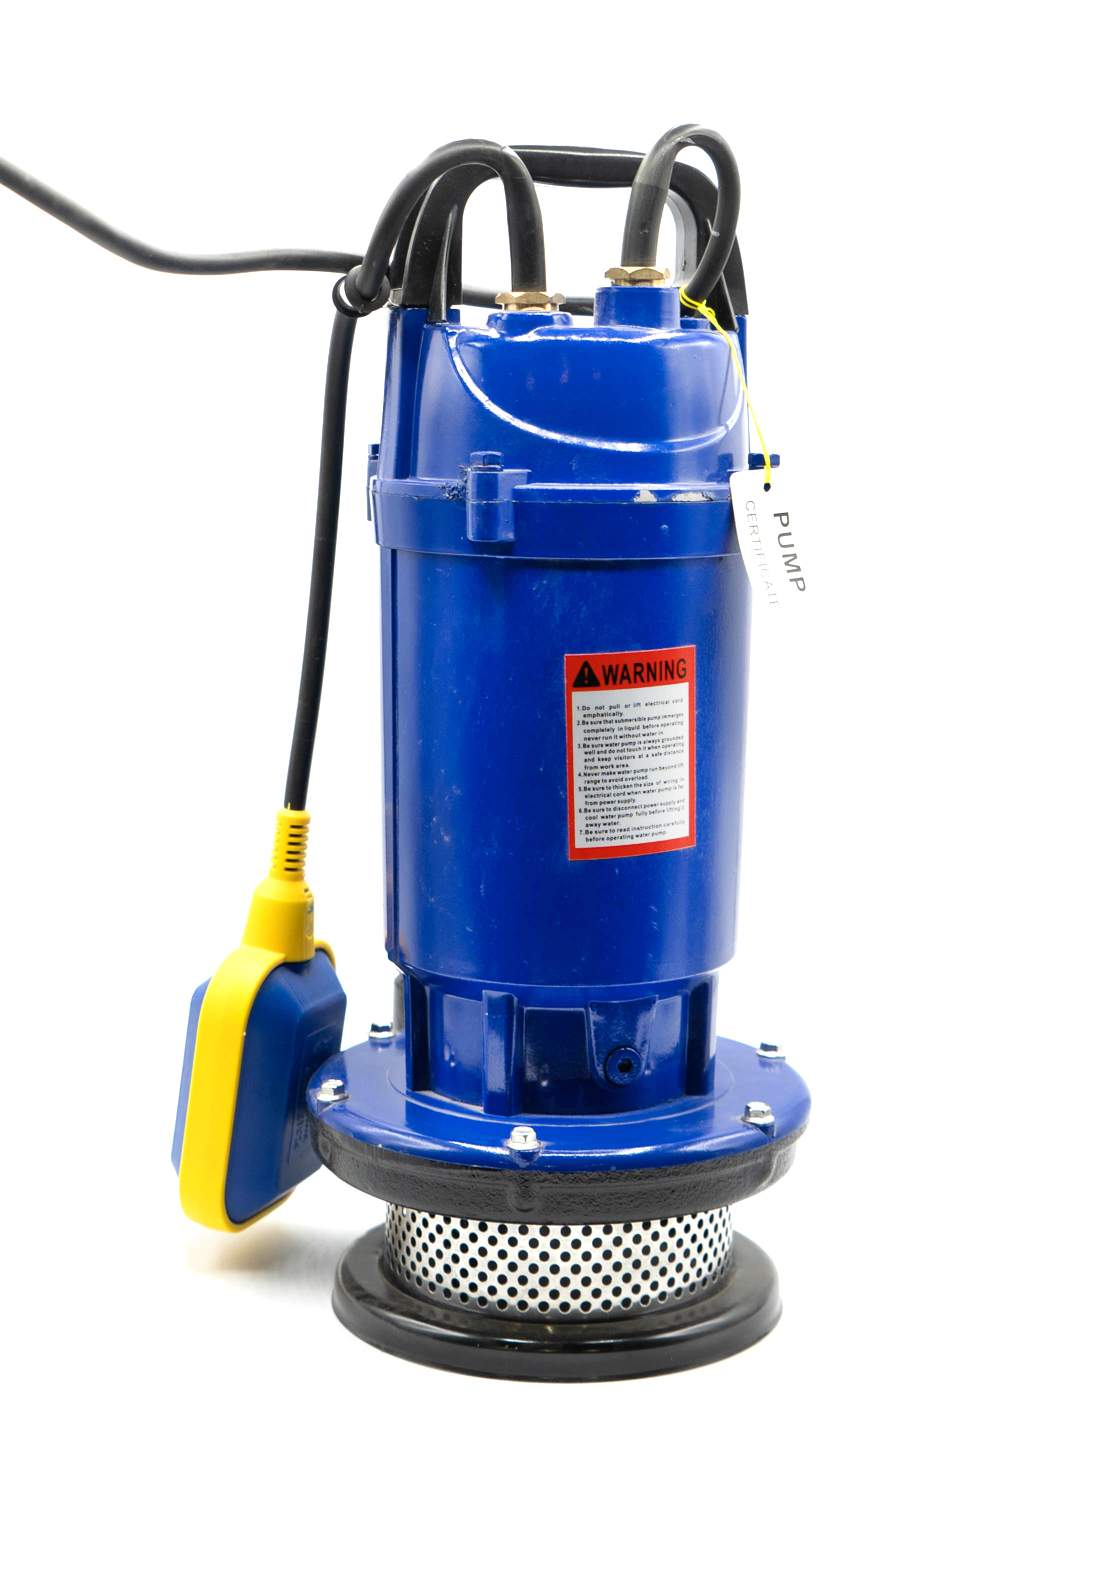 Sali W32025DX Submersible Water Pump QDX1.5m³/s ماطور ماء غطاس